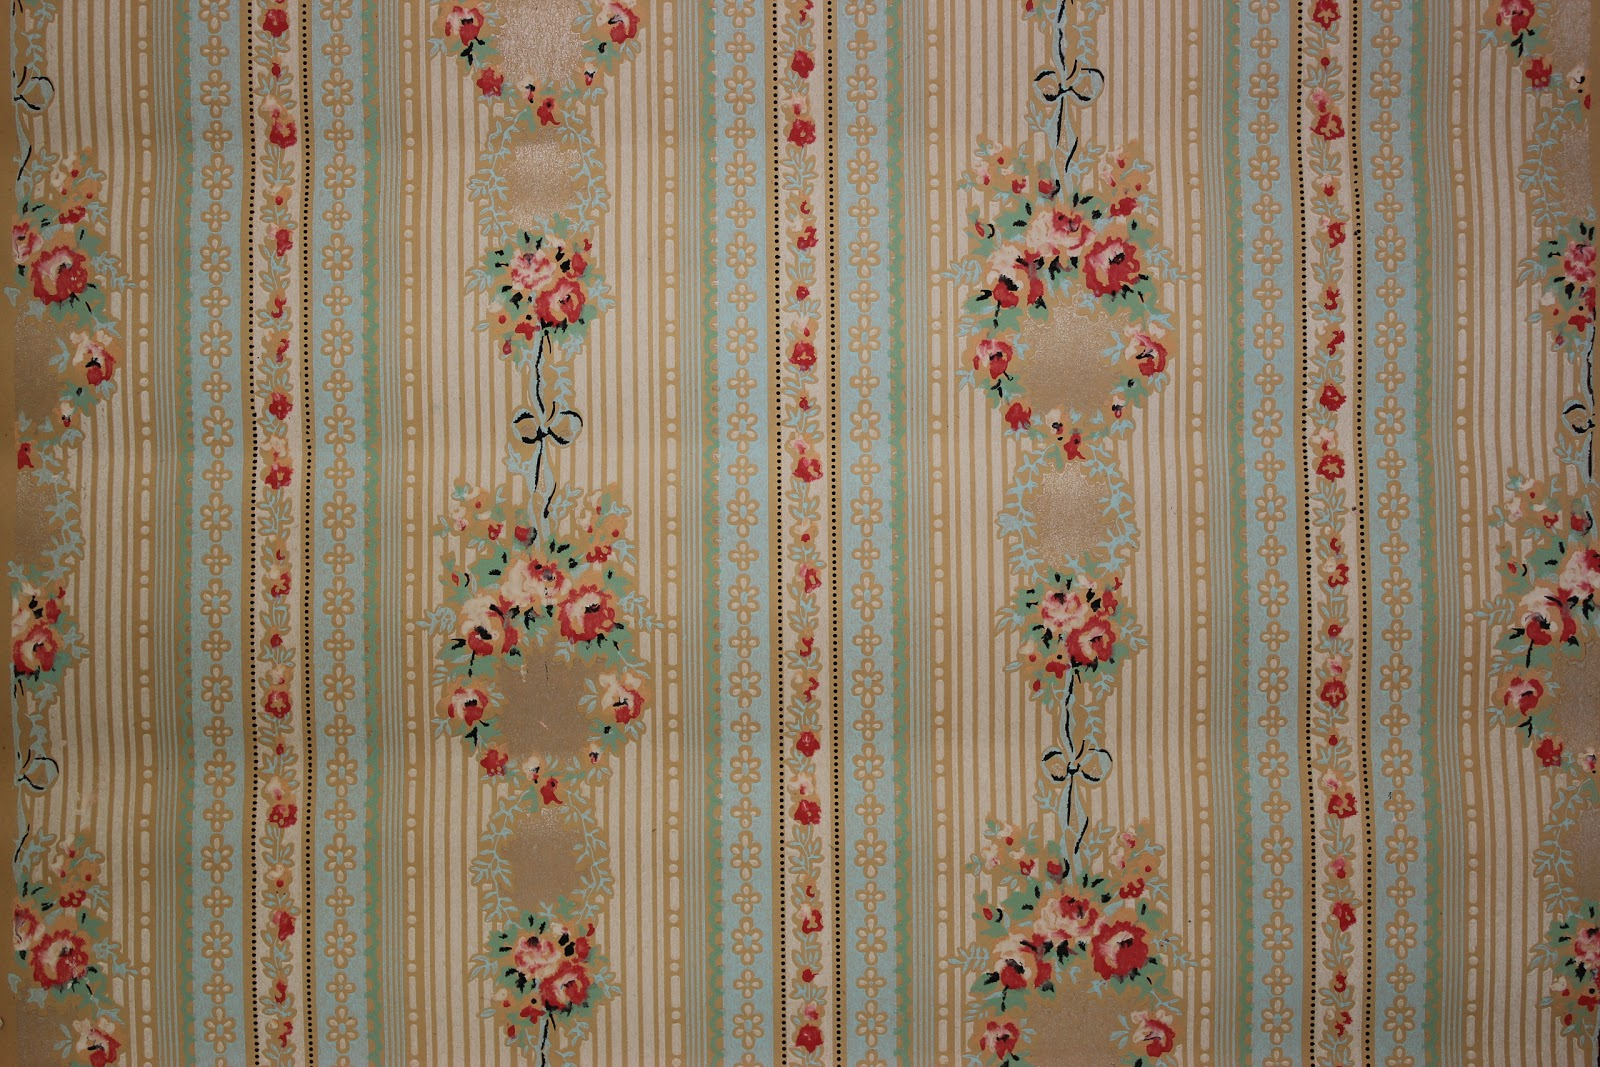 Rosie 39 s vintage wallpaper january 2012 for Vintage wallpaper